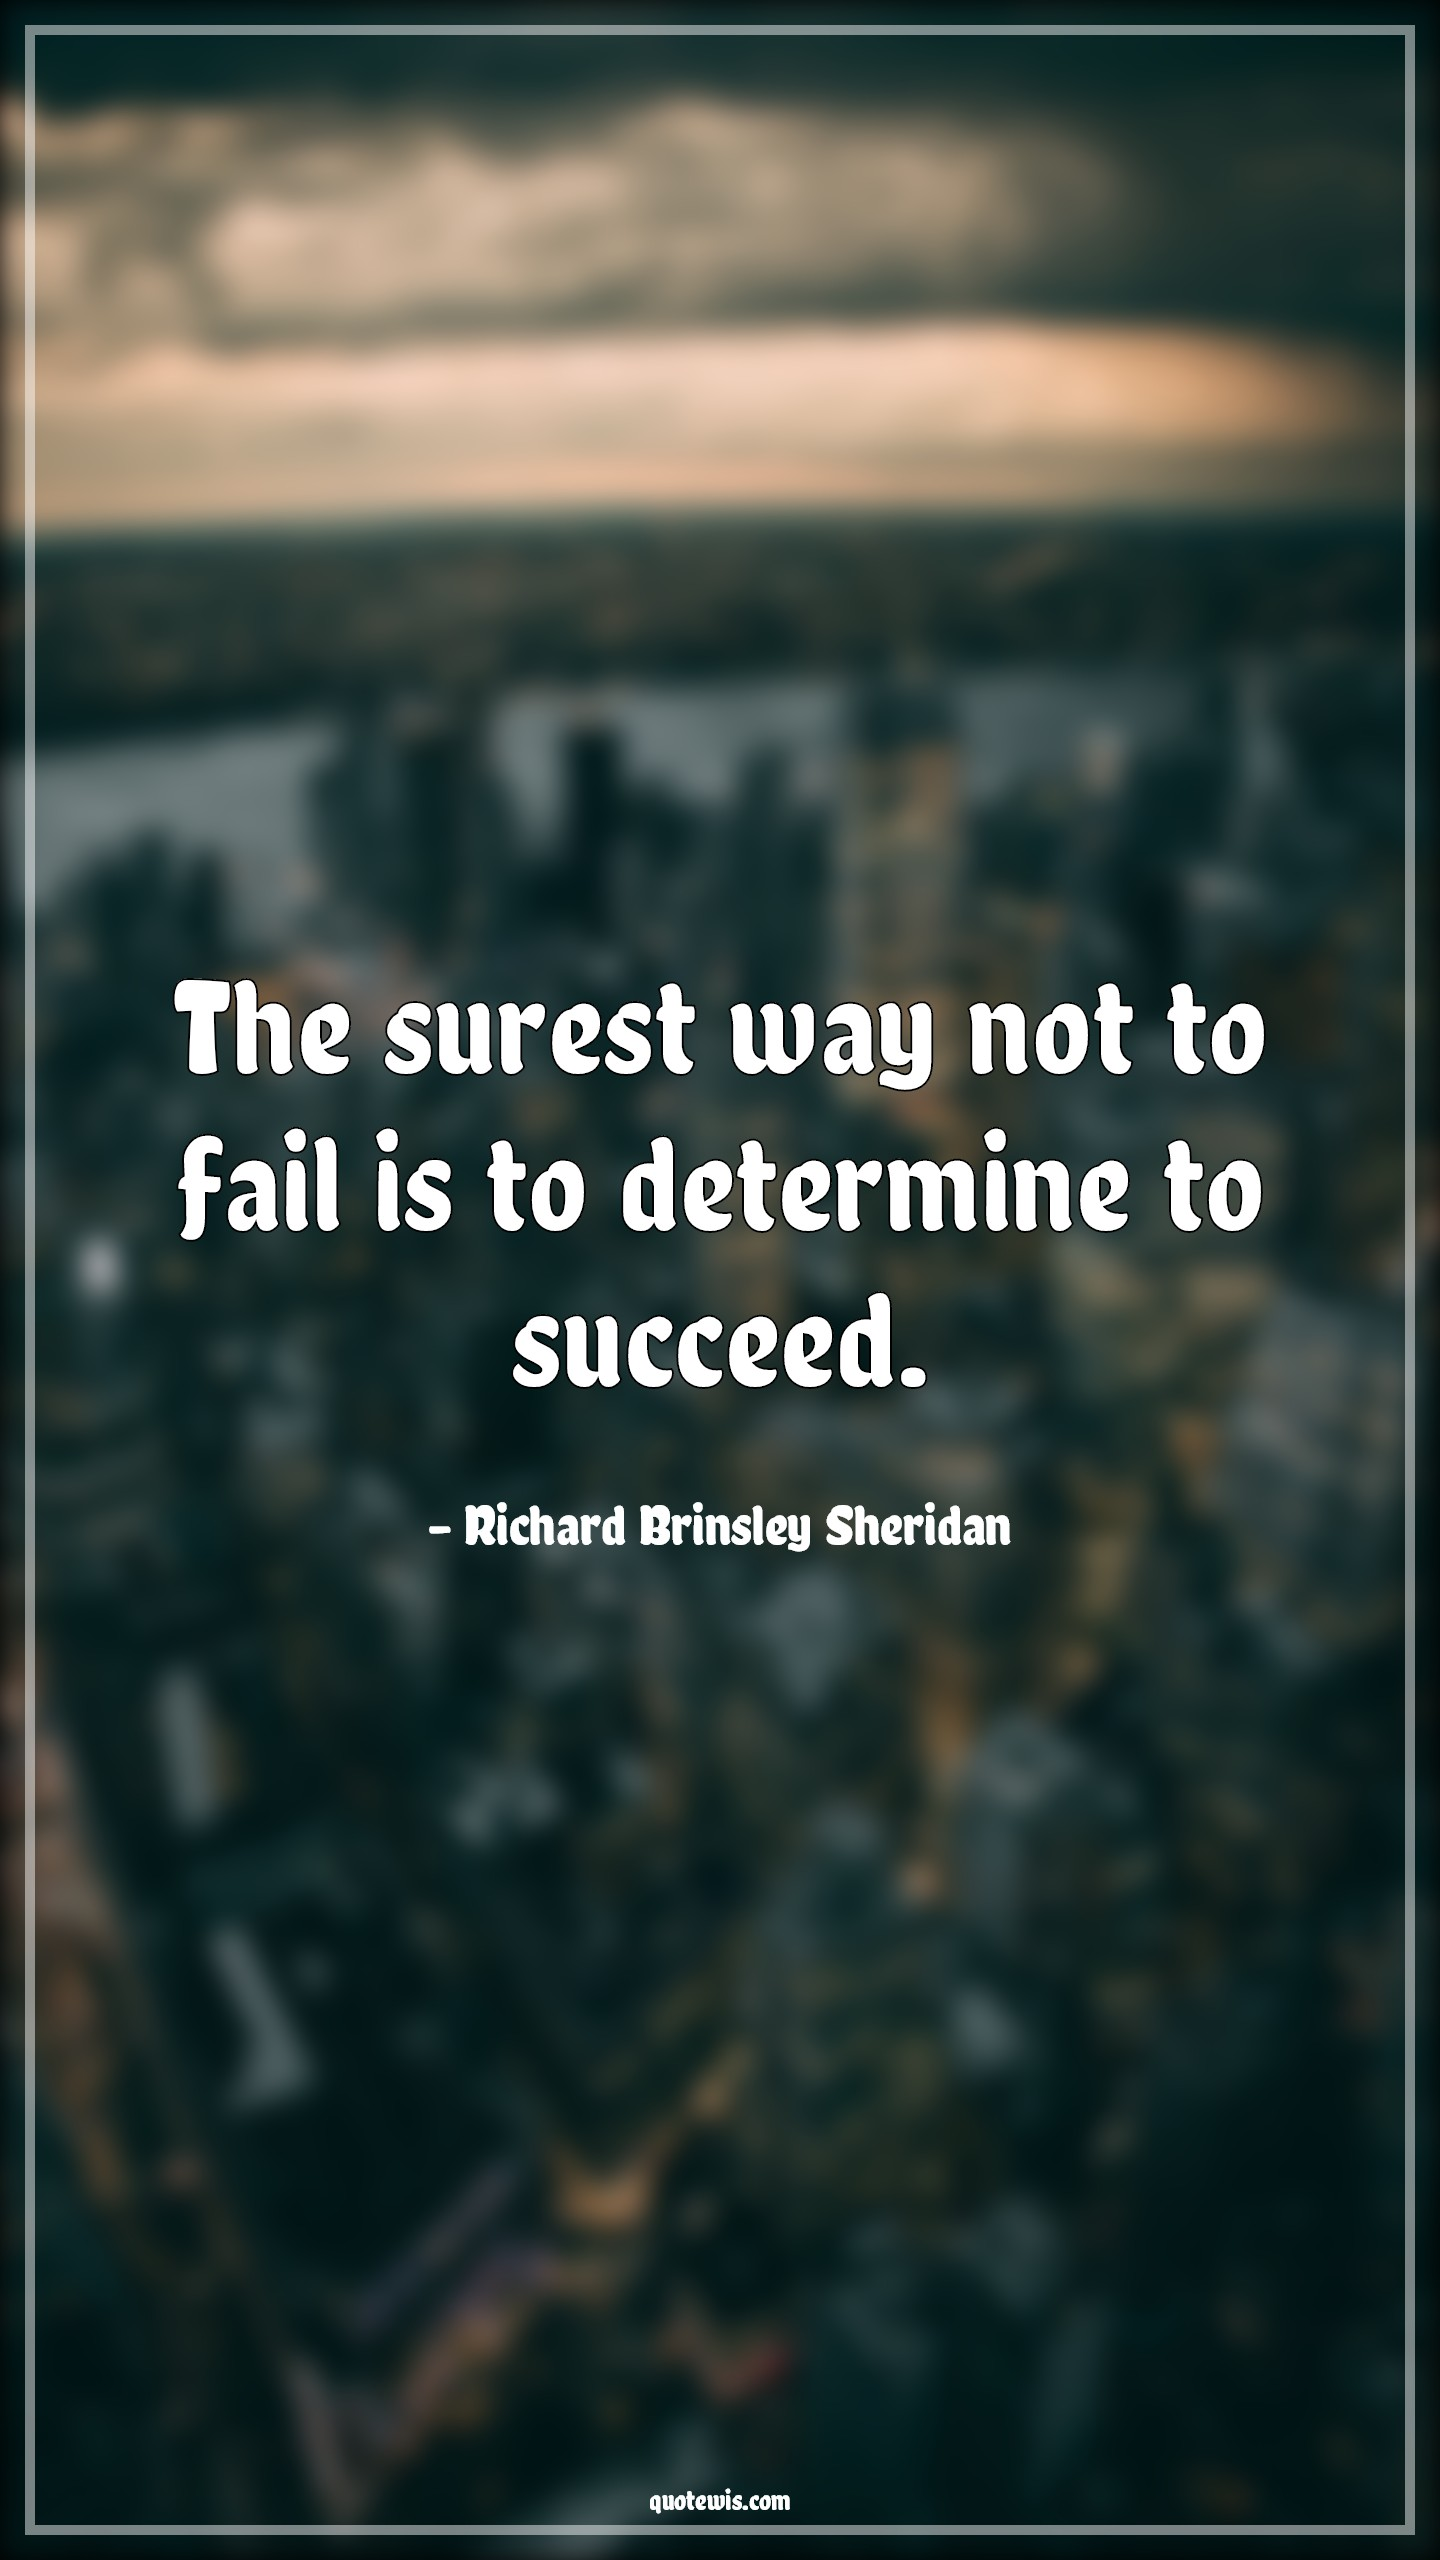 The surest way not to fail is to determine to succeed.